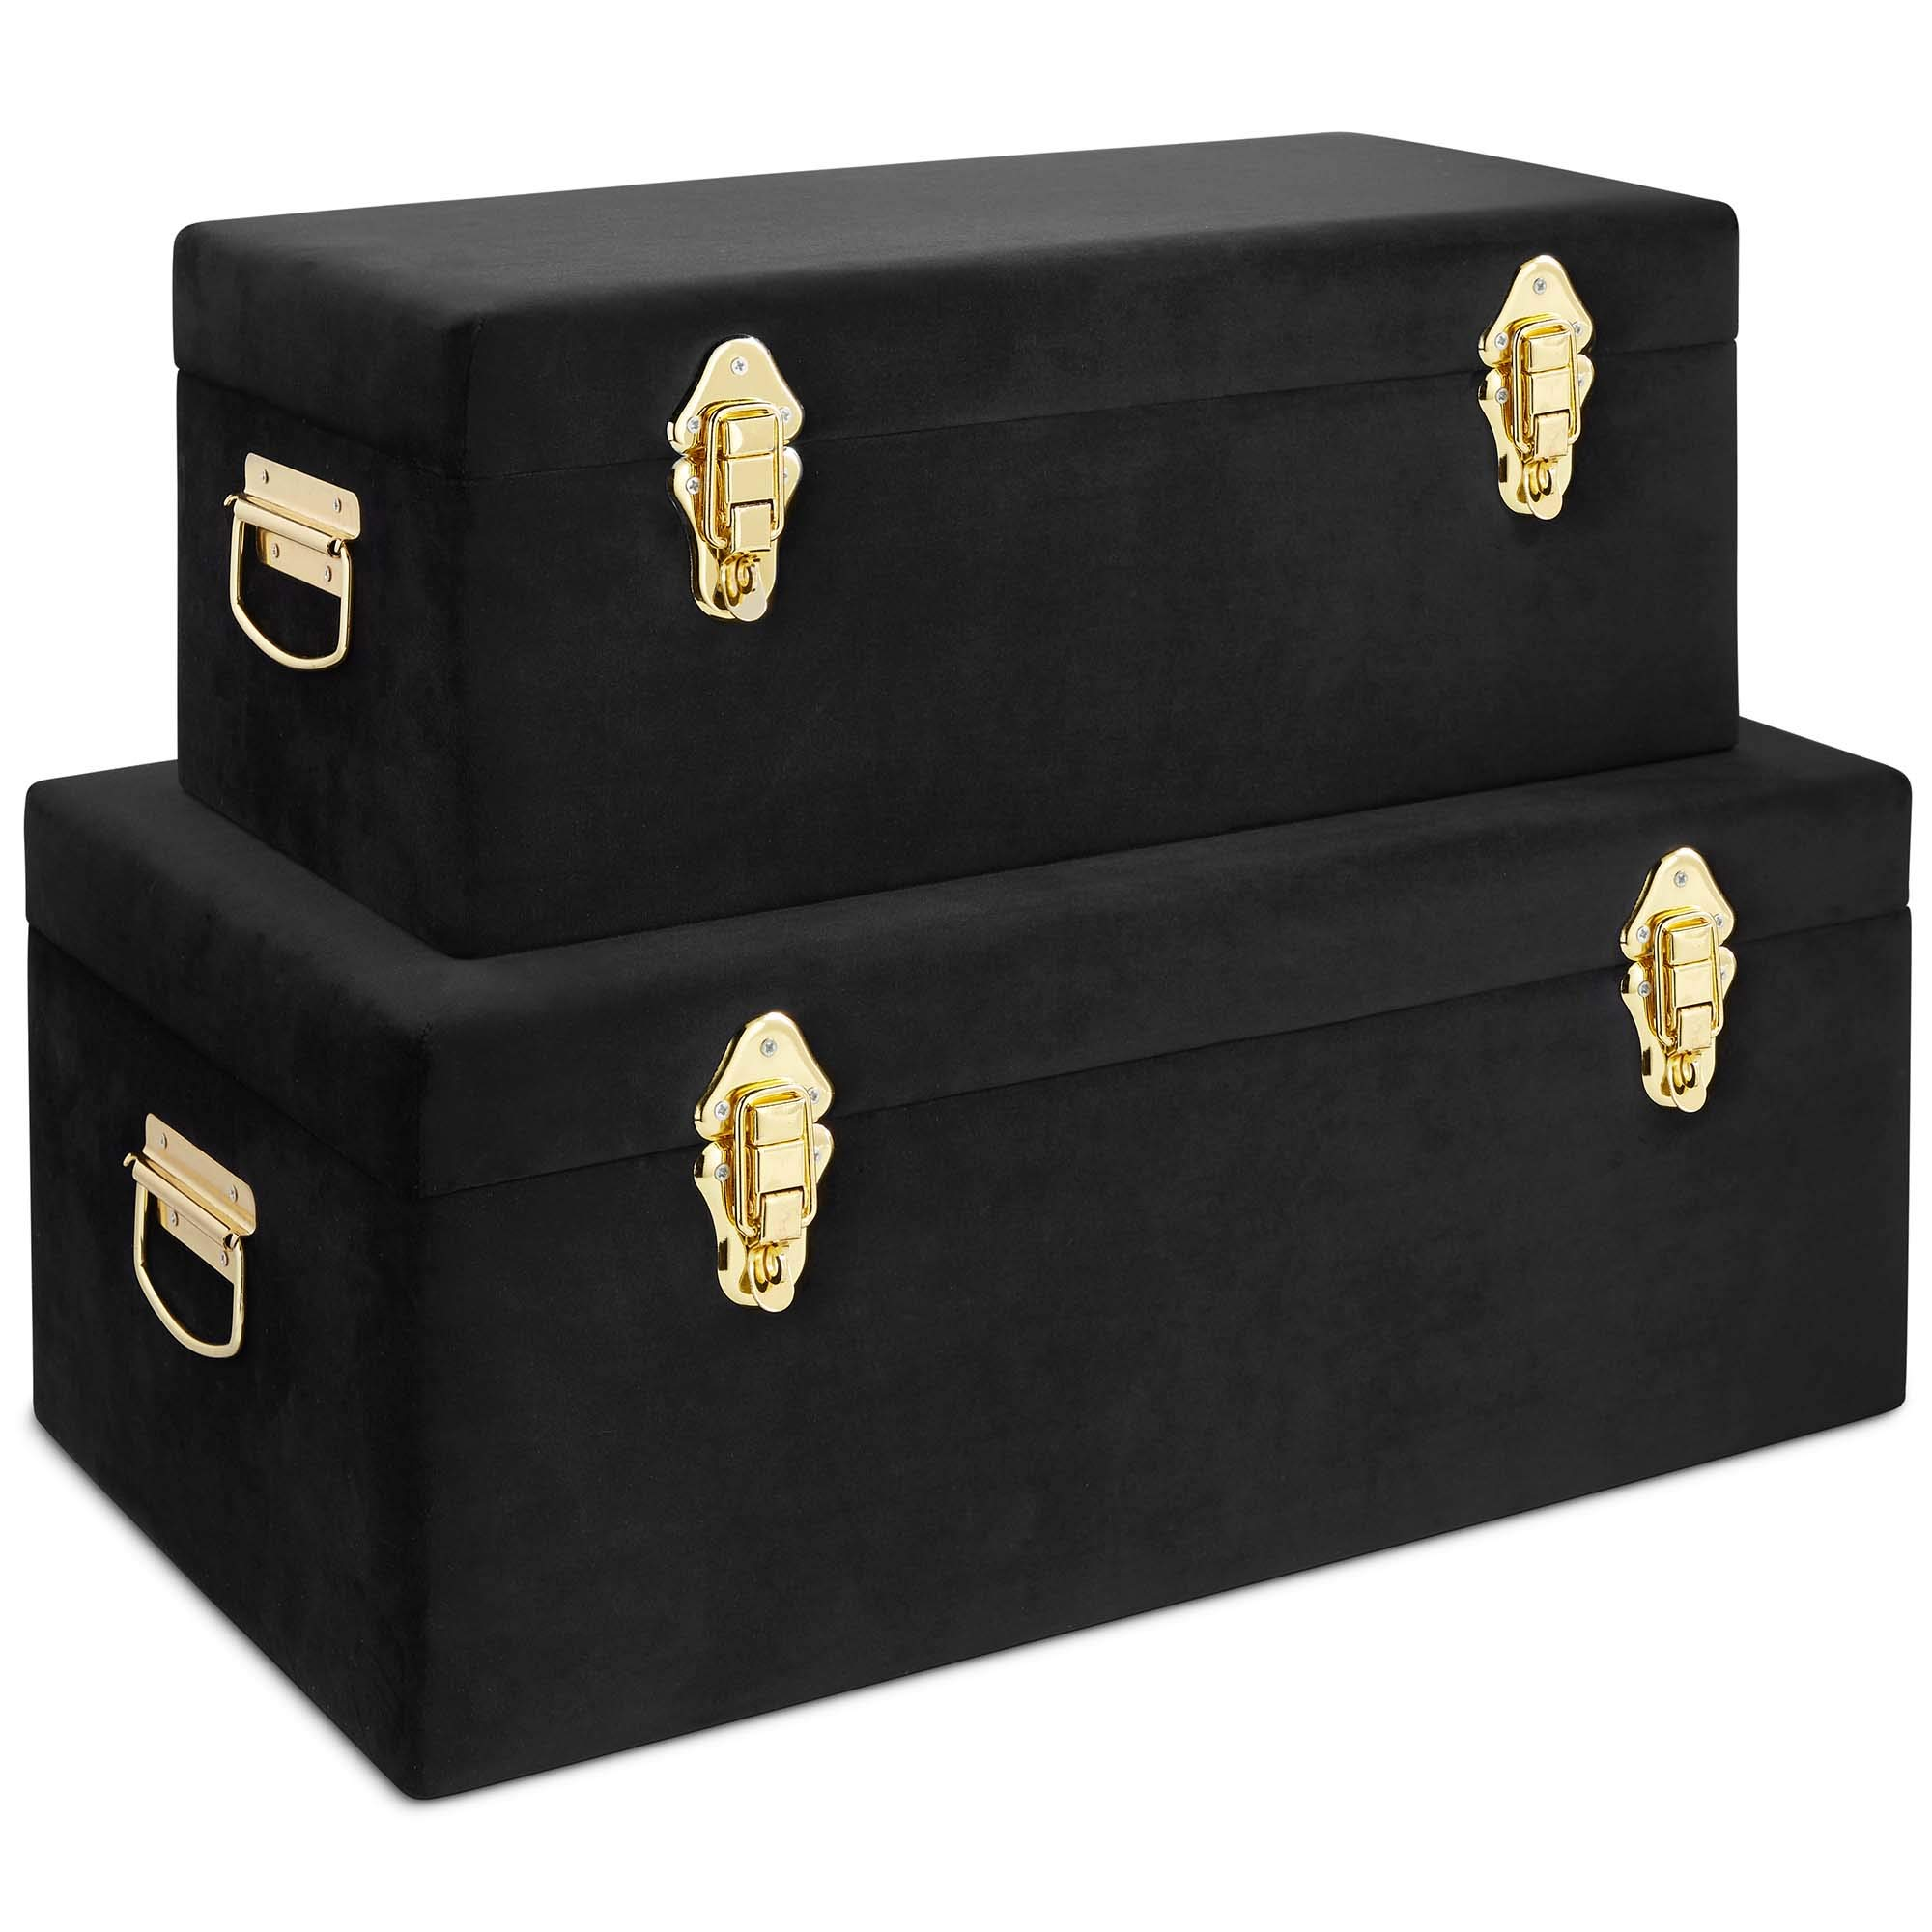 Beautify Black Velvet Decorative Storage Trunk Set with Brass Clasps - College Dorm and Bedroom Footlocker Trunks by Beautify